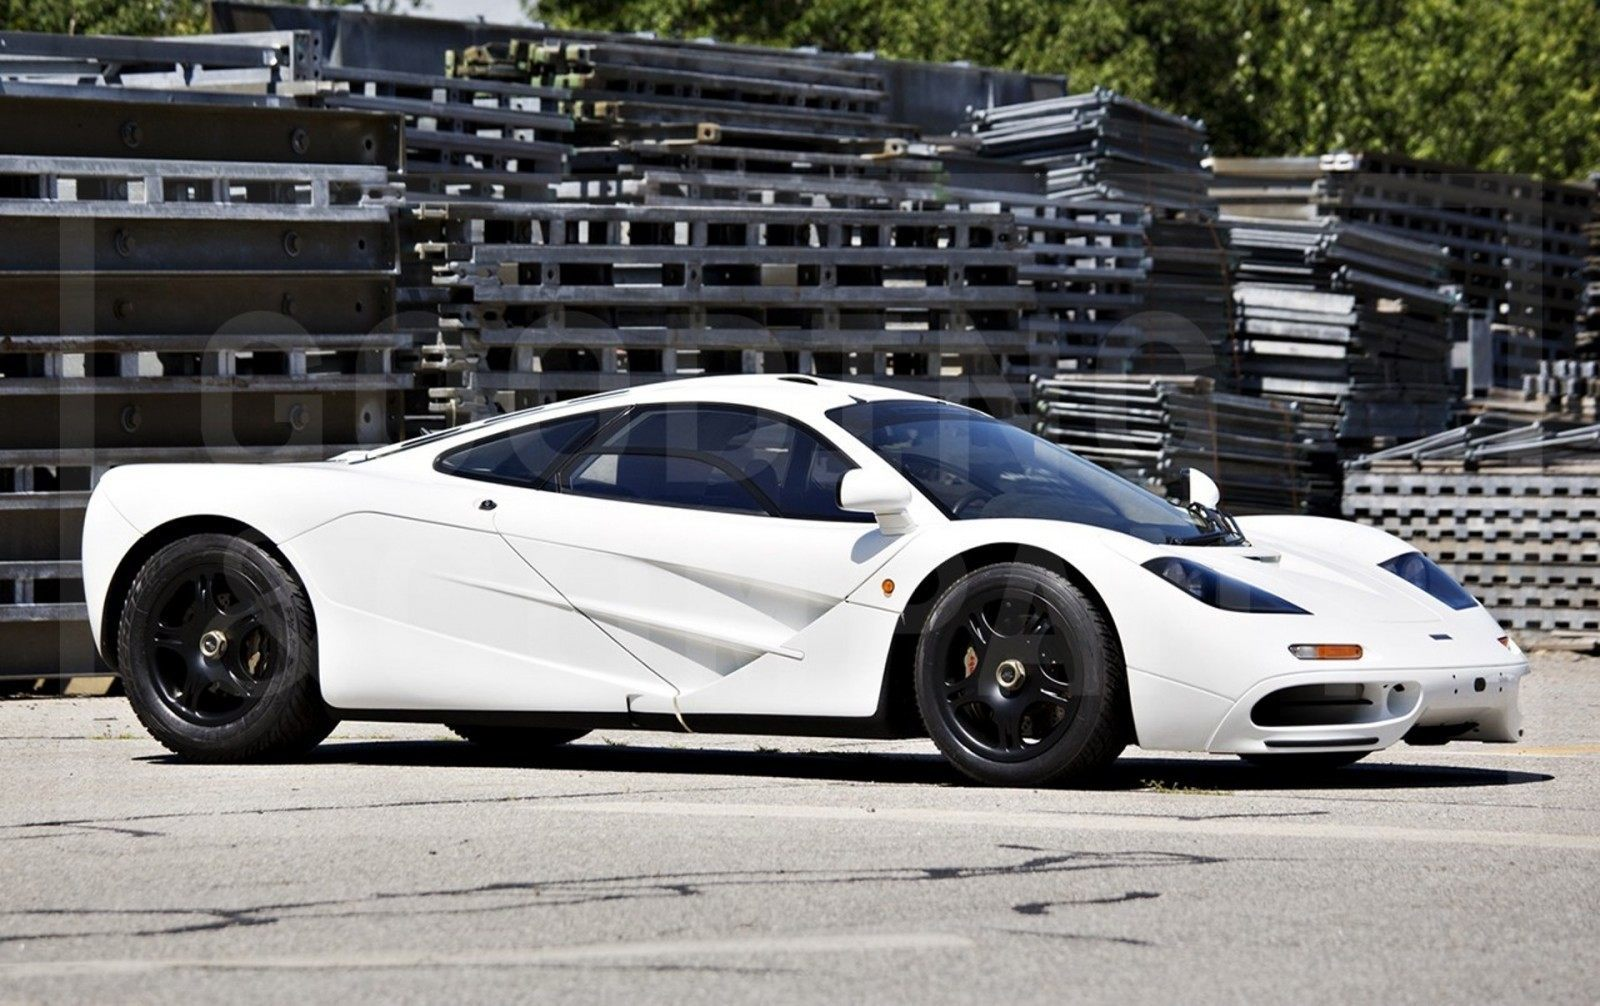 Gooding Pebble Beach 2014 Preview - 1995 McLaren F1 - The Only White F1 Ever Made = $12Mil+ 2